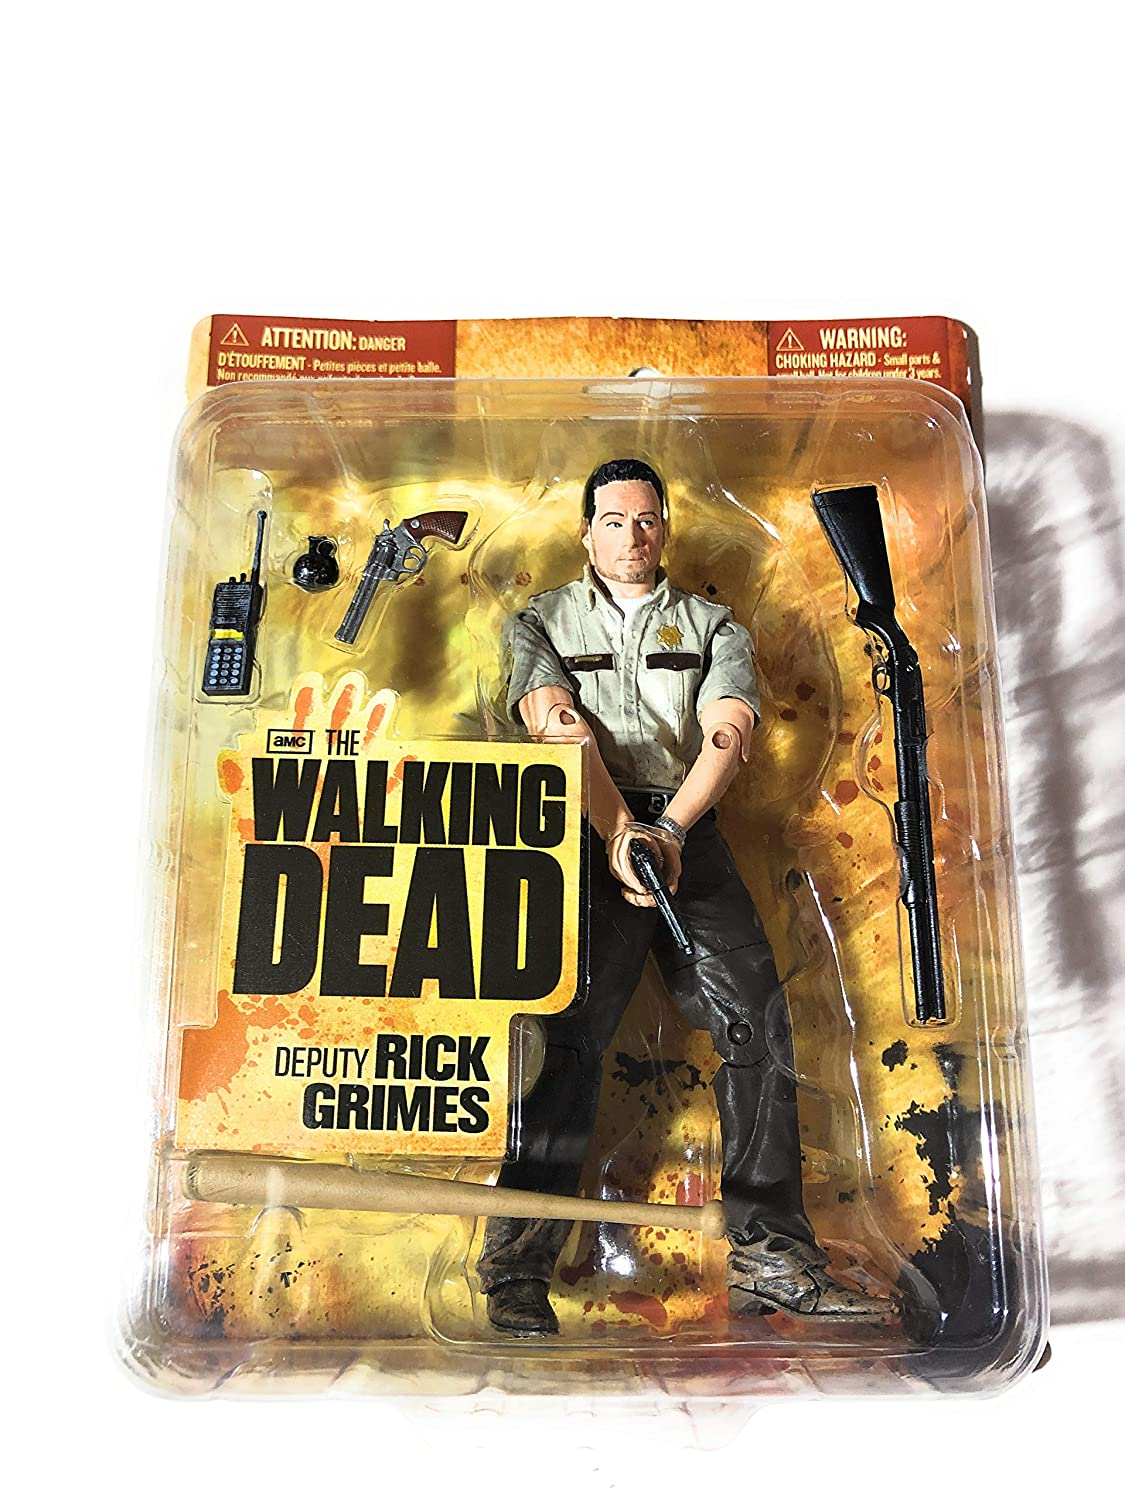 McFarlane Toys The Walking Dead Deputy Rick Grimes